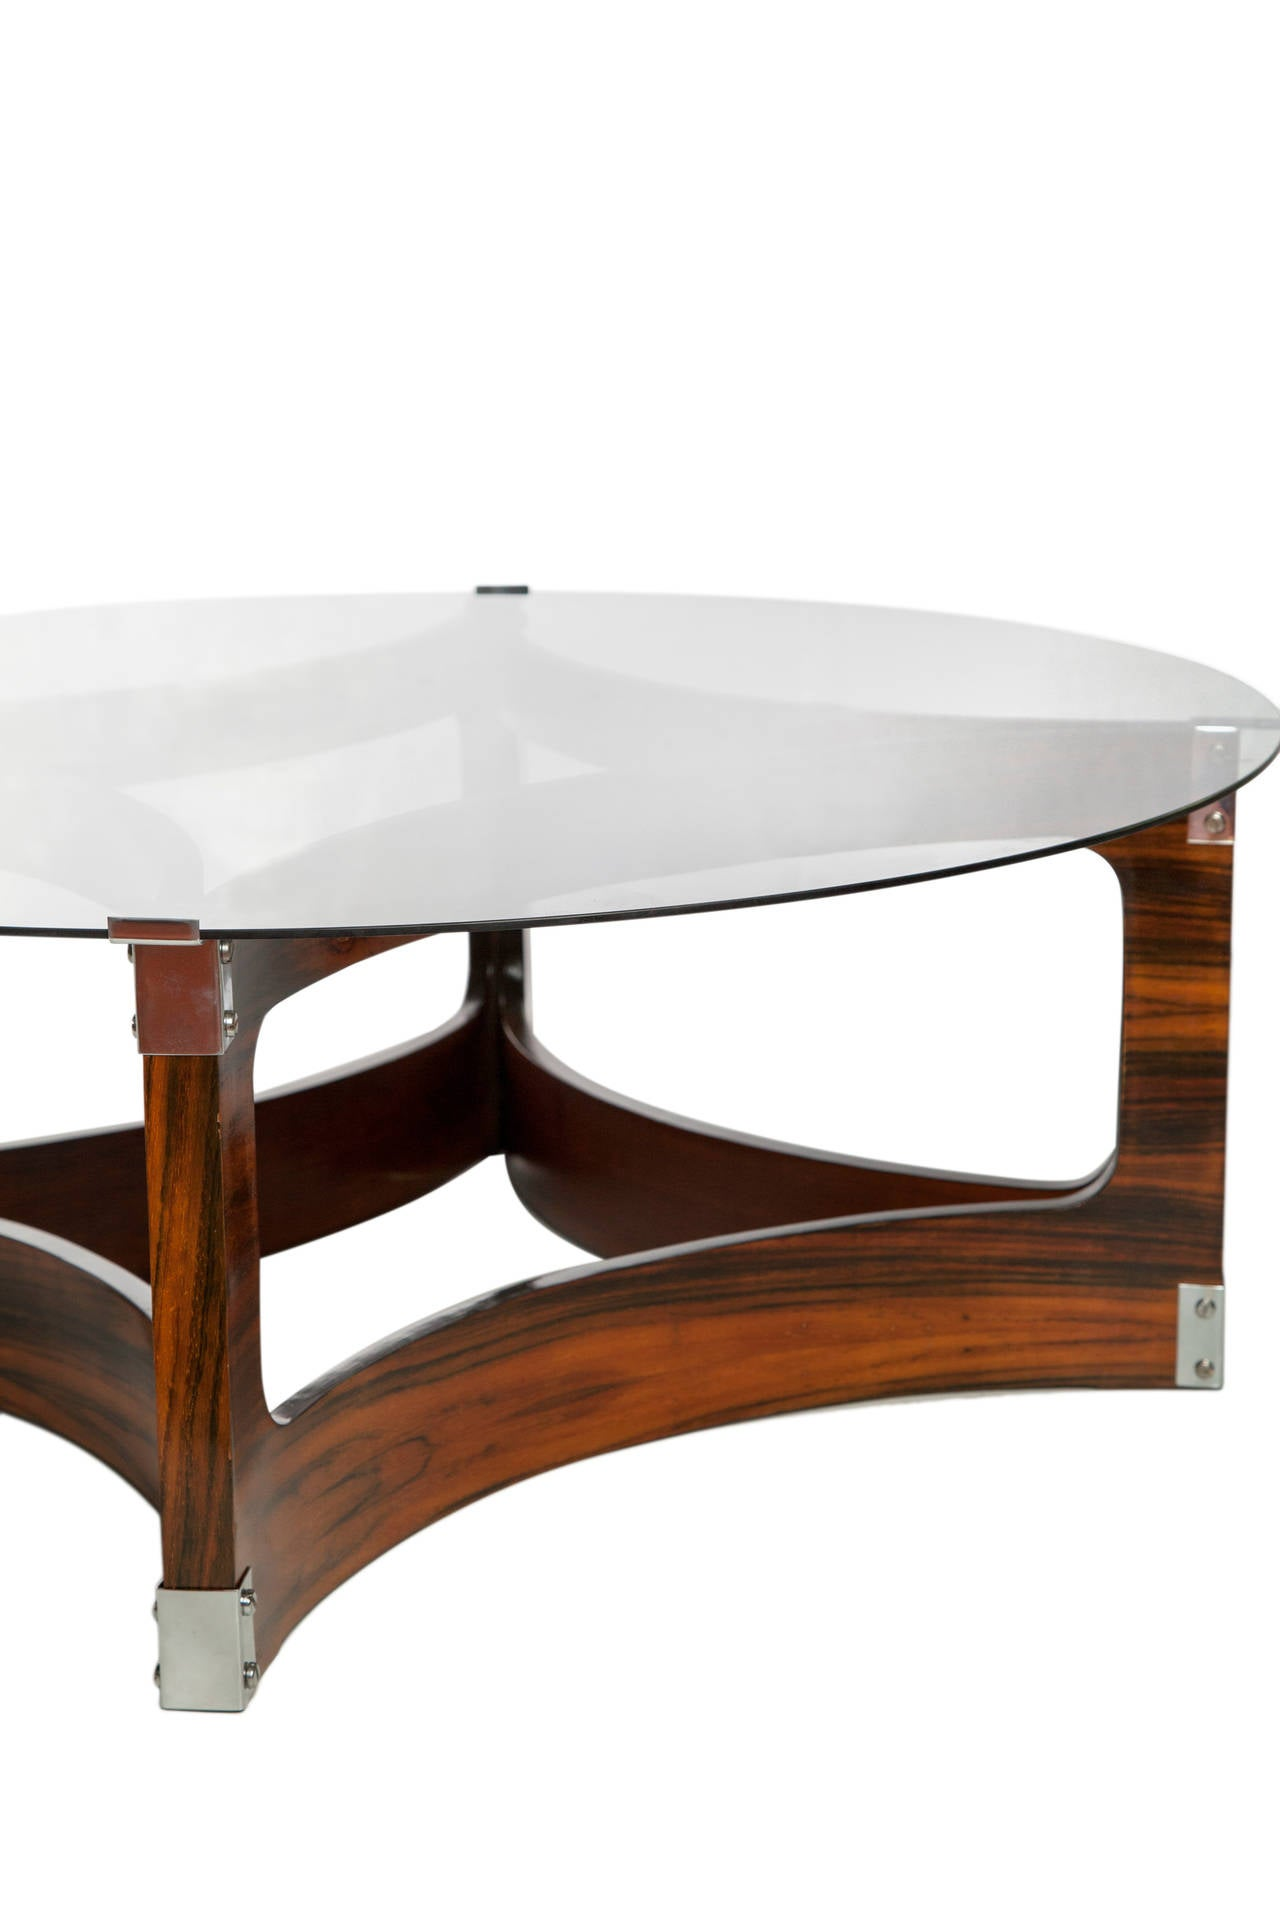 A vintage coffee table, produced, circa 1960s by designer Jorge Zalszupin for L'Atelier, with round smoked glass top, on a curved, diamond shaped frame base in Brazilian jacaranda wood, with chrome-plated supports to the corners. Good condition,